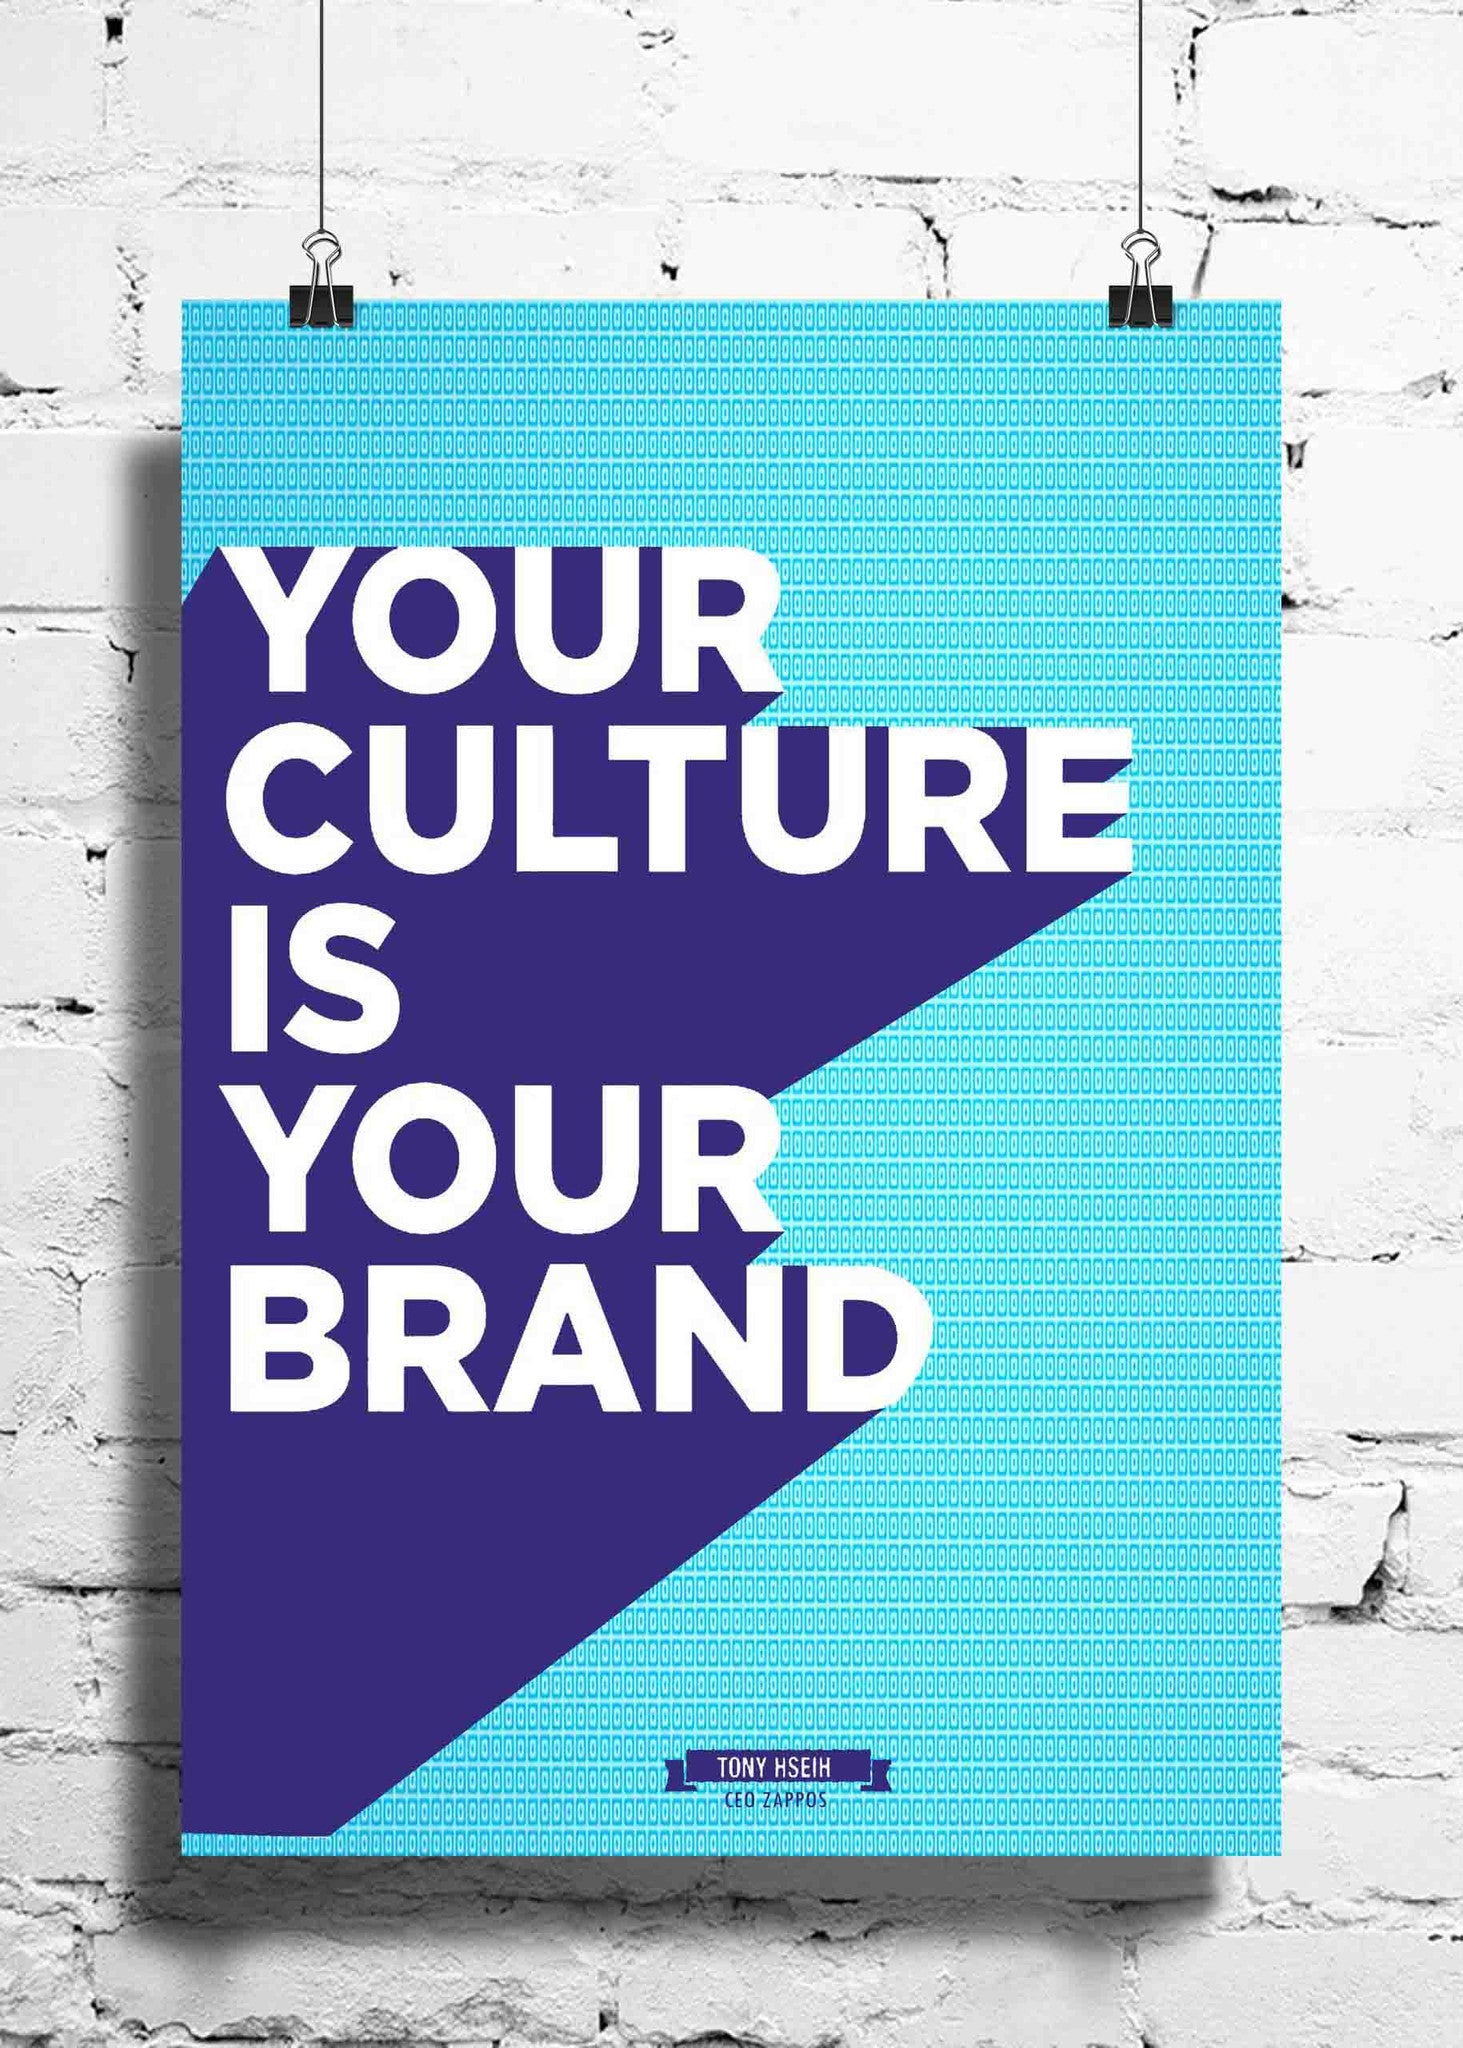 Cool Abstract Motivation Your Culture wall posters, art prints, stickers decals - stuffpanda - 1